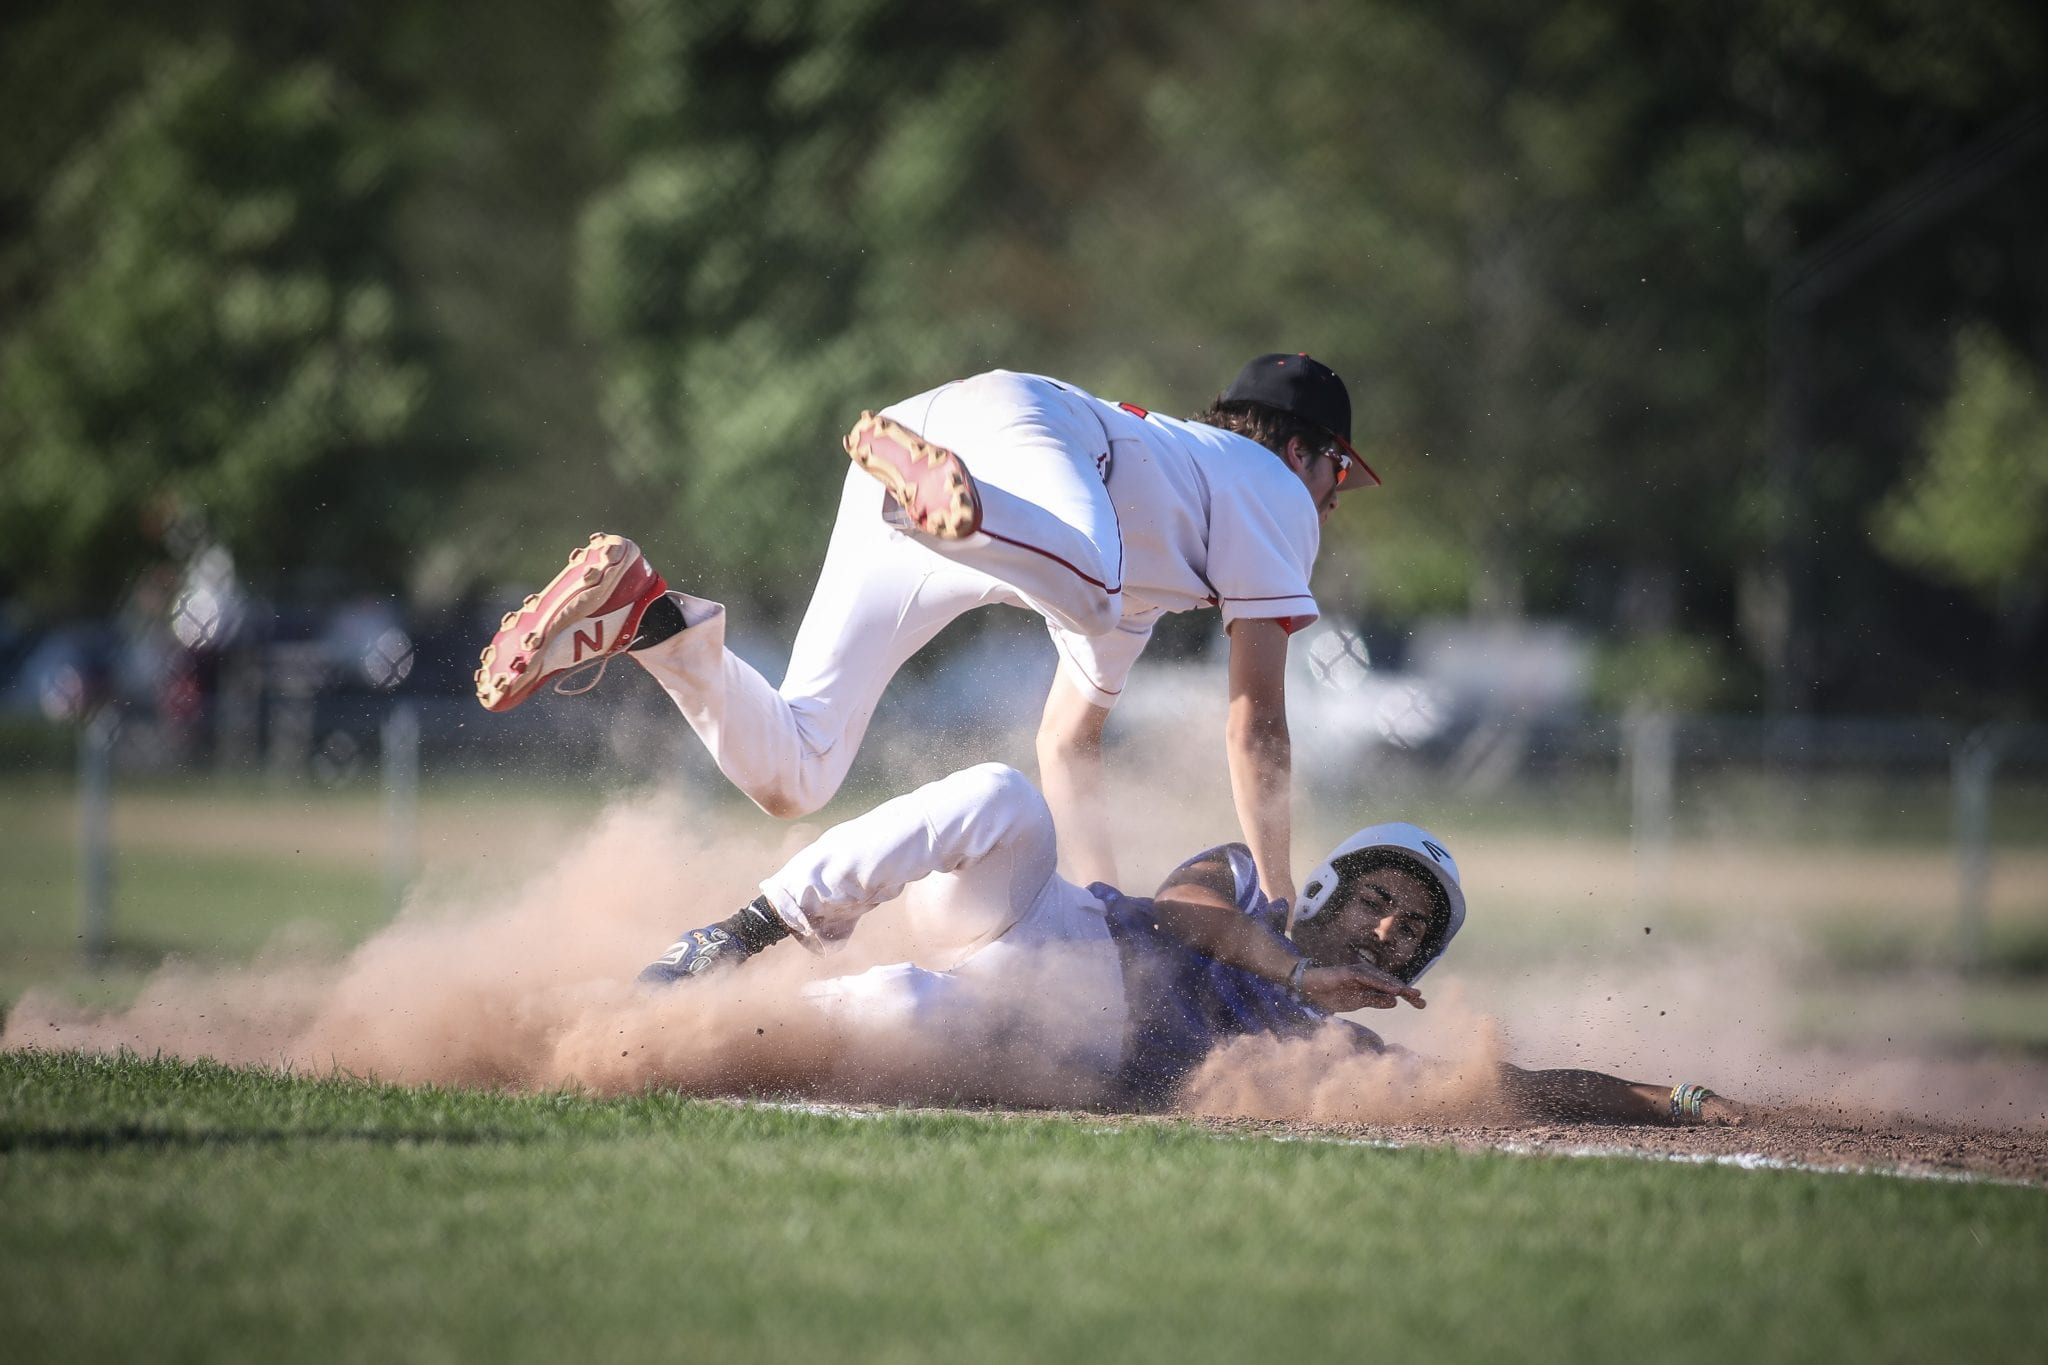 Junior Bobby Falvey avoids the collision after he tags out the runner trying to steal third.